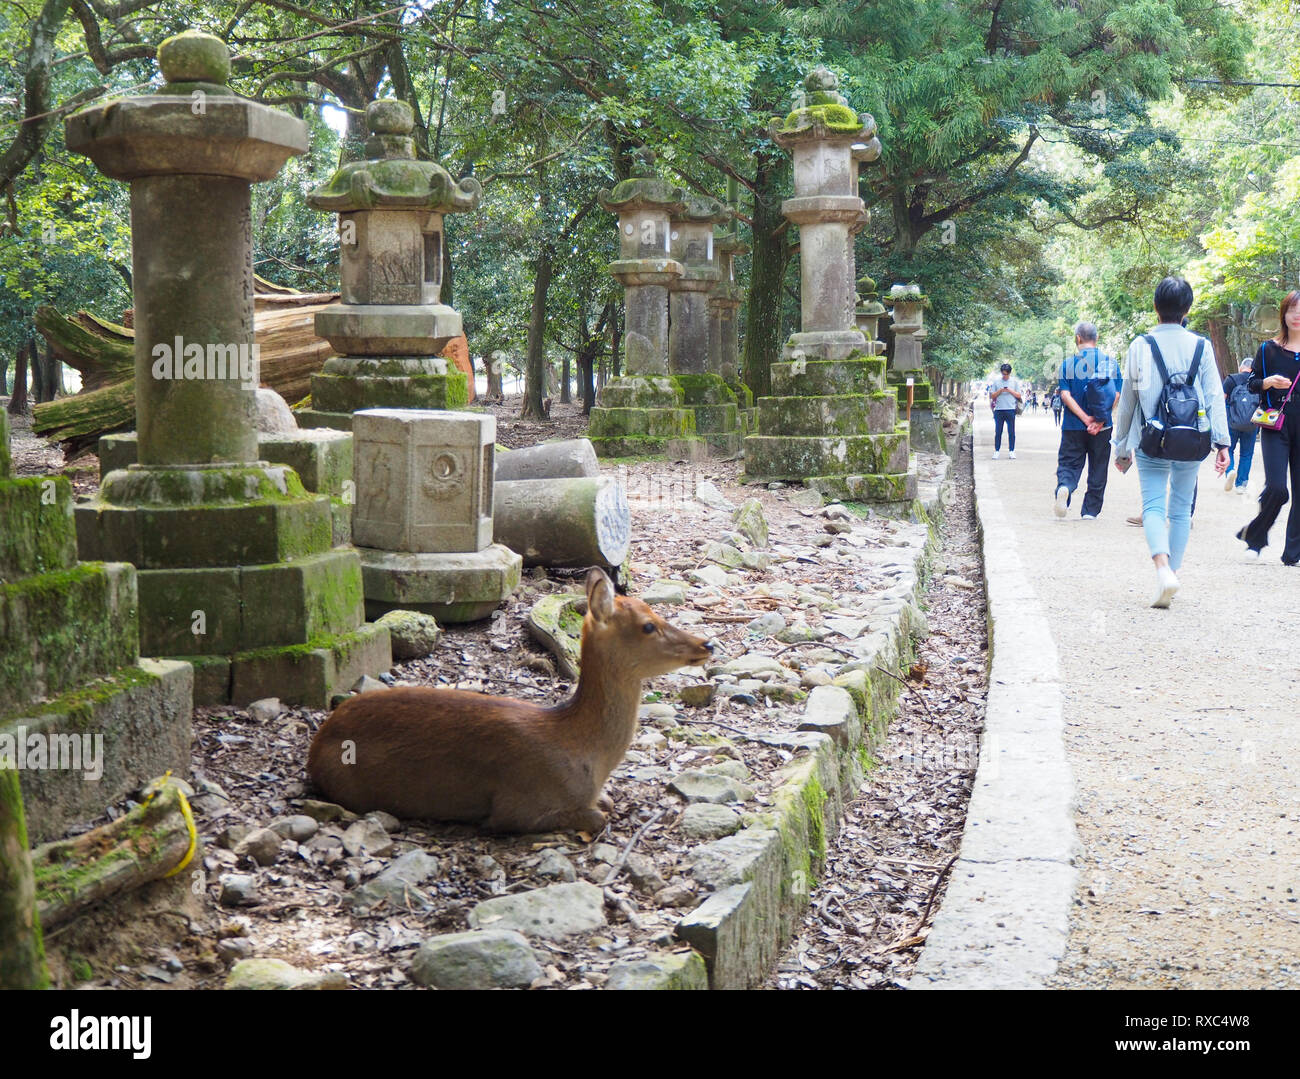 Nara, Japan - 15 Oct 2018: A deer is lying amidst ancient stone structures near the Kasuga Grand Shrine at Nara, Japan, while tourists are passing by. Stock Photo